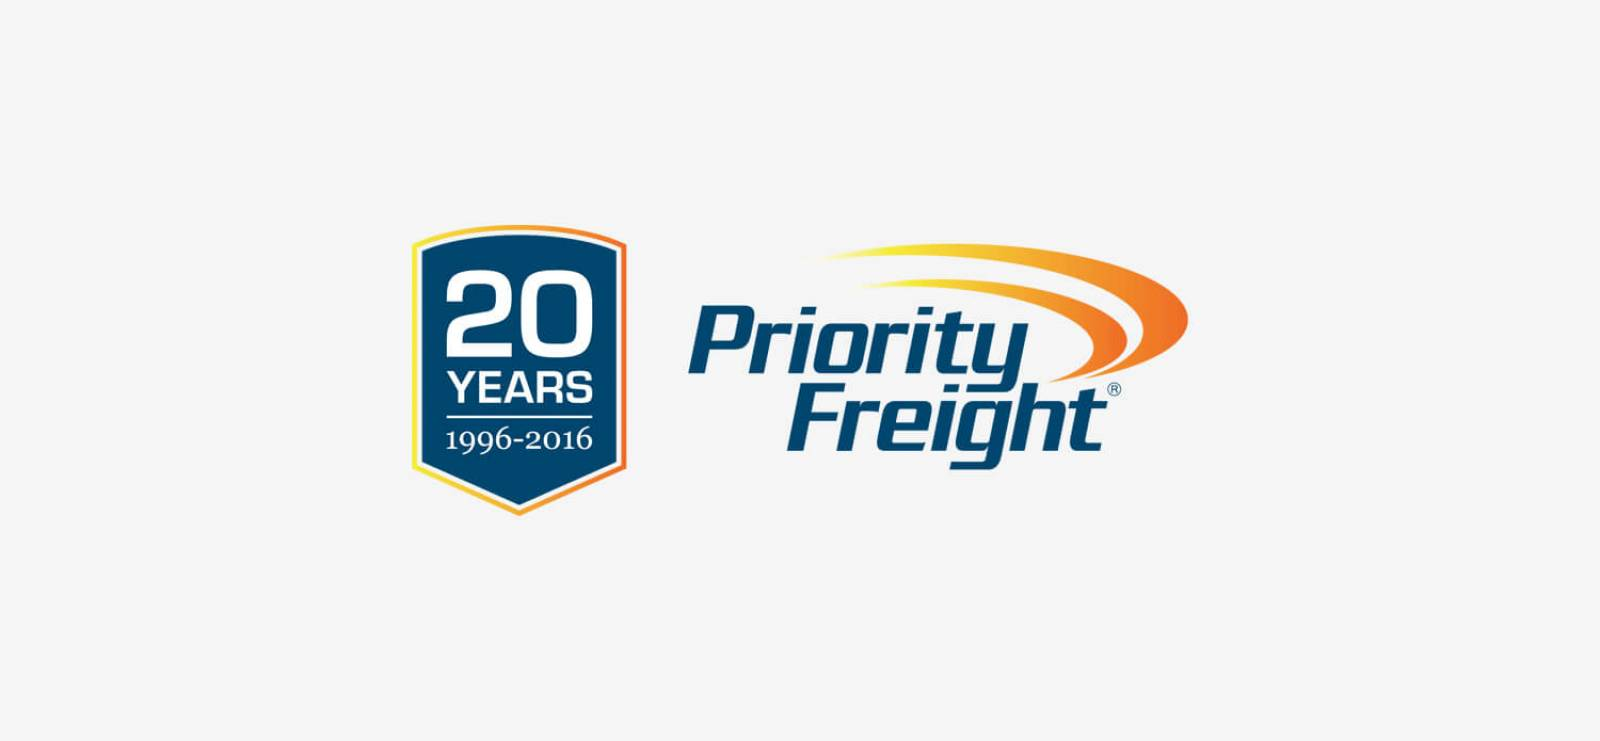 Priority-Freight-logo-design-agency-graphic-design-canterbury.jpg